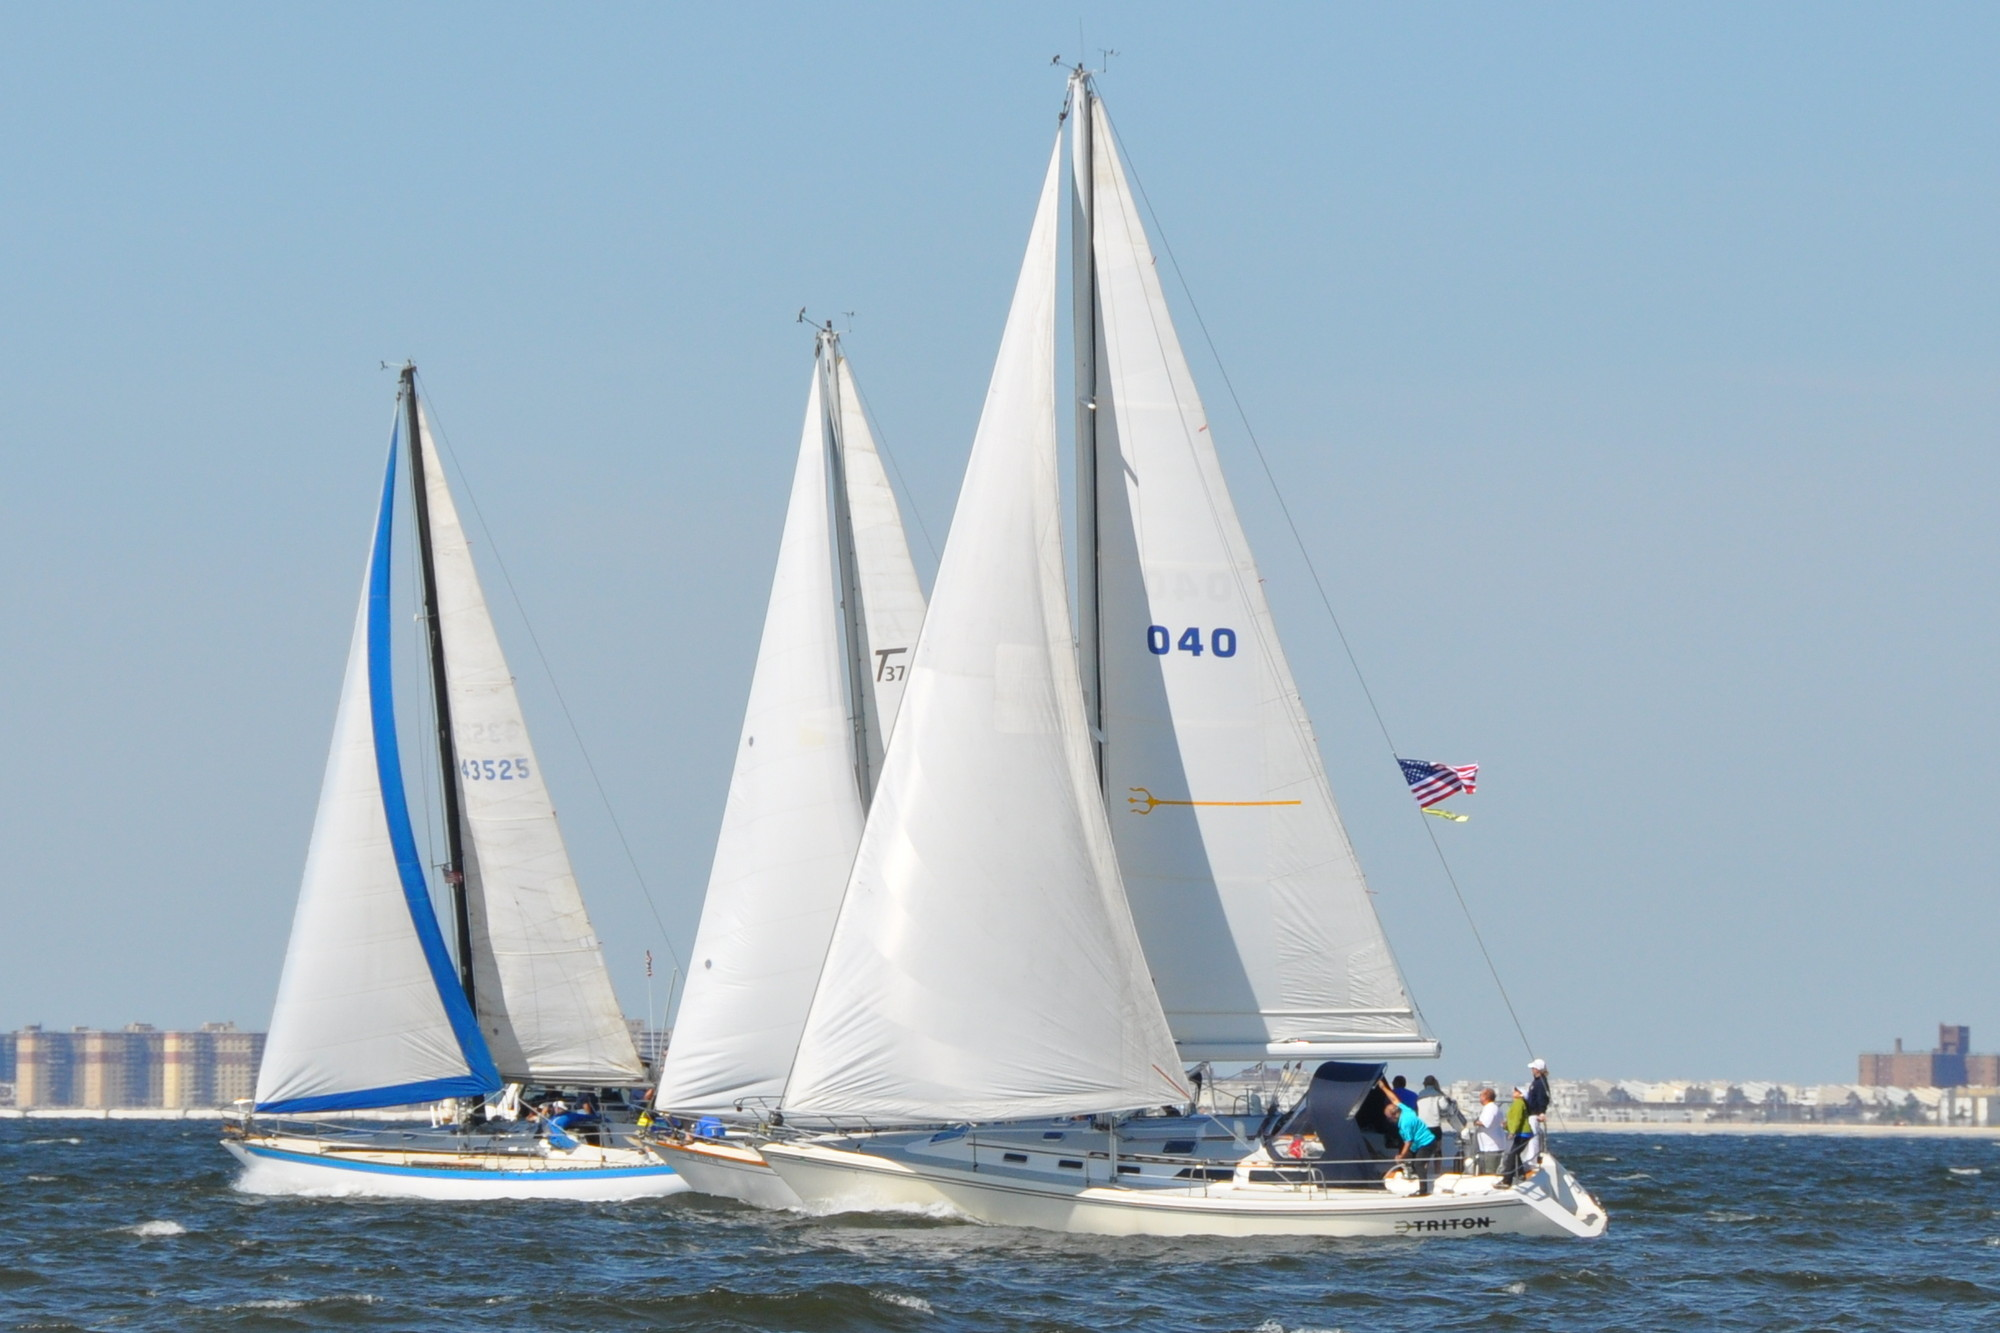 Woodmere Bay Yacht Club members took part in the annual Spirit Rider Regatta on Sept. 7. Proceeds support the O'Keefe Foundation 9/11 scholarship.